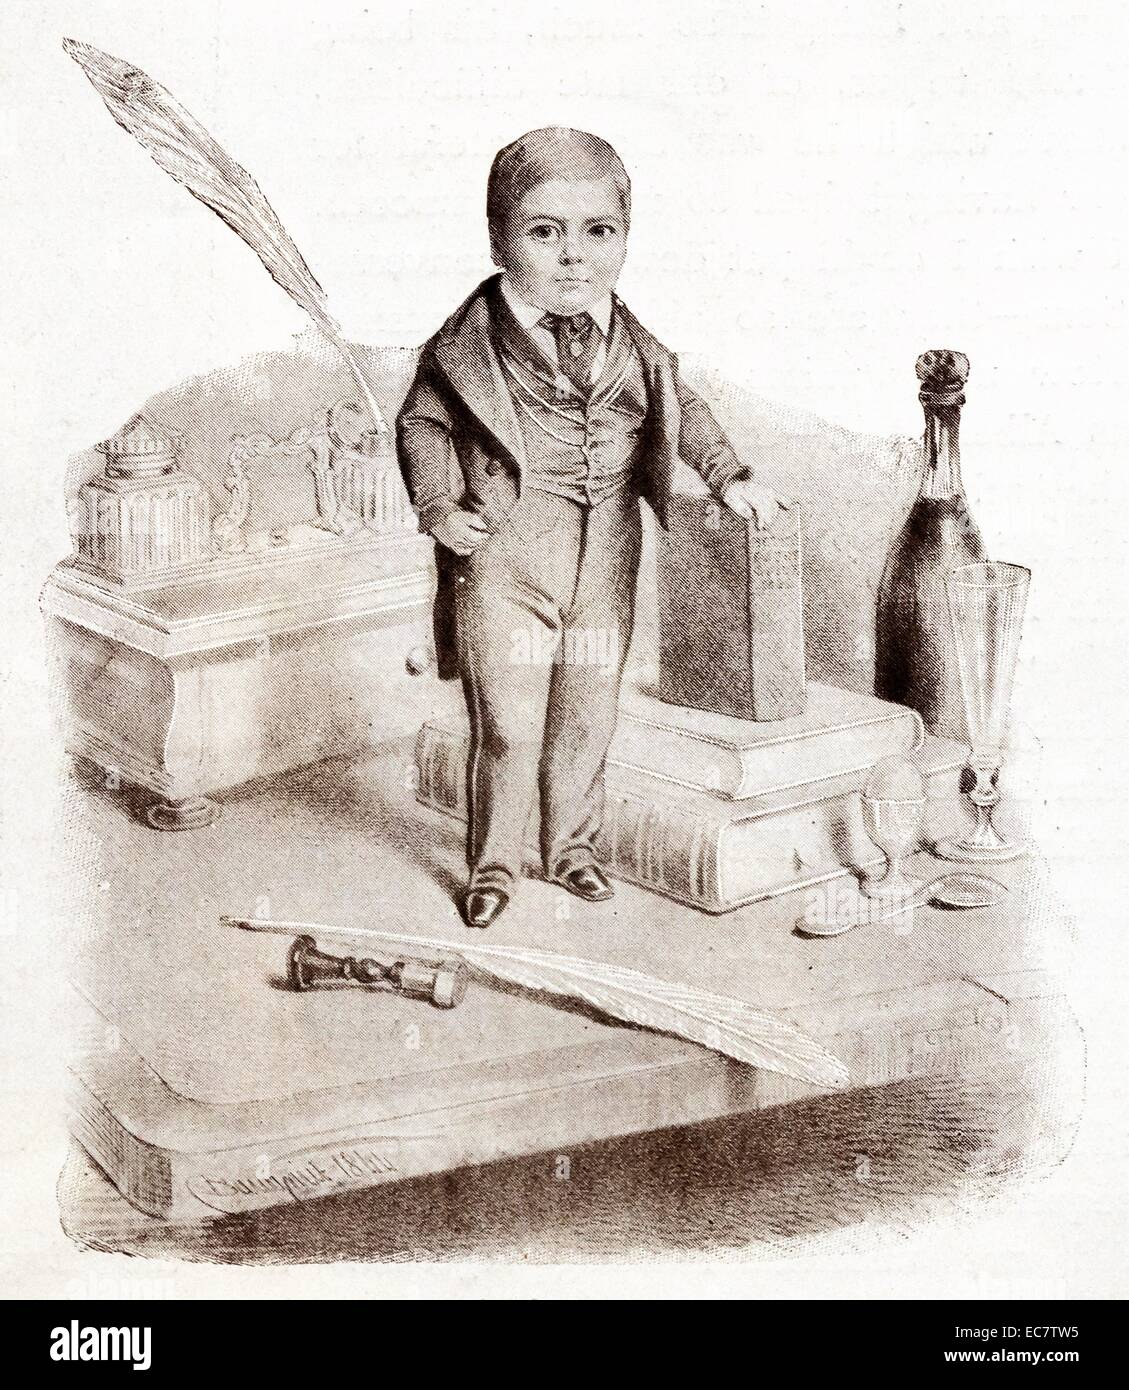 General Tom Thumb who achieved great fame as a midget performer - Stock Image